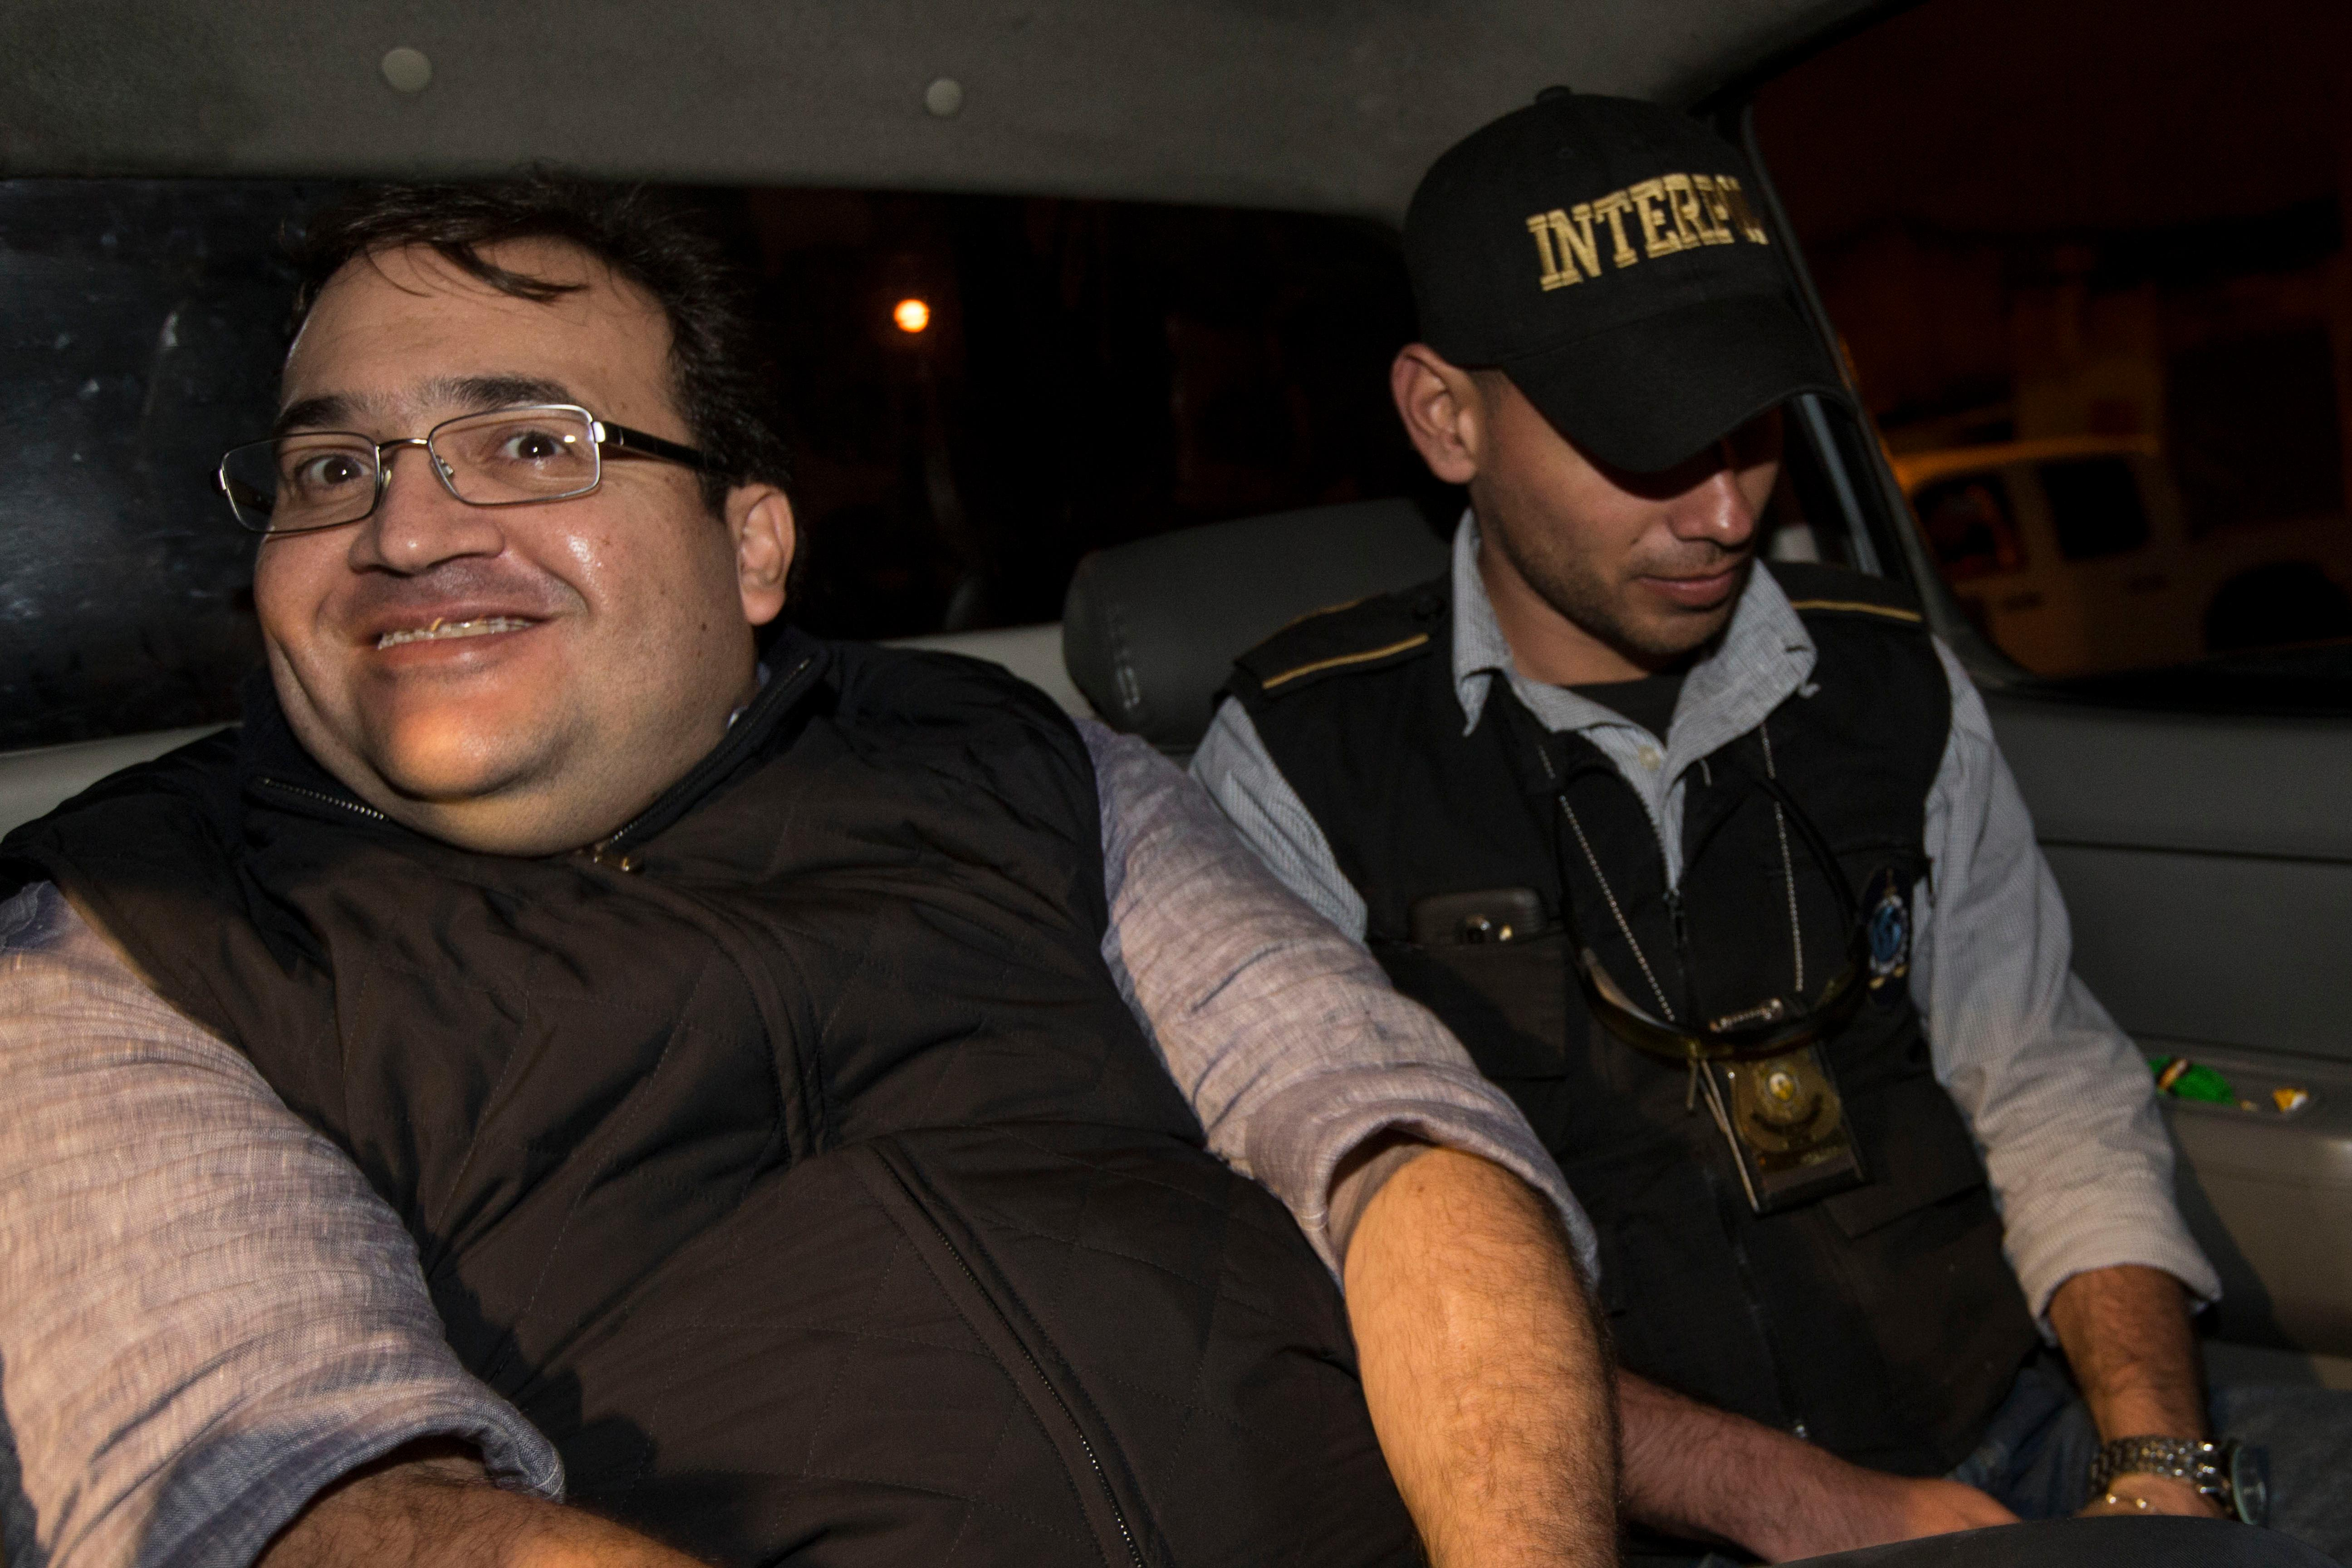 Mexico's former Veracruz state Gov. Javier Duarte, left, is escorted by an agent of the local Interpol office inside a police car as they arrive at Guatemala City, early Sunday, April 16, 2017. Duarte, who is accused of running a ring that allegedly pilfered from state coffers, has been detained in Guatemala after six months as a fugitive and a high-profile symbol of government corruption. (AP Photo/Moises Castillo)